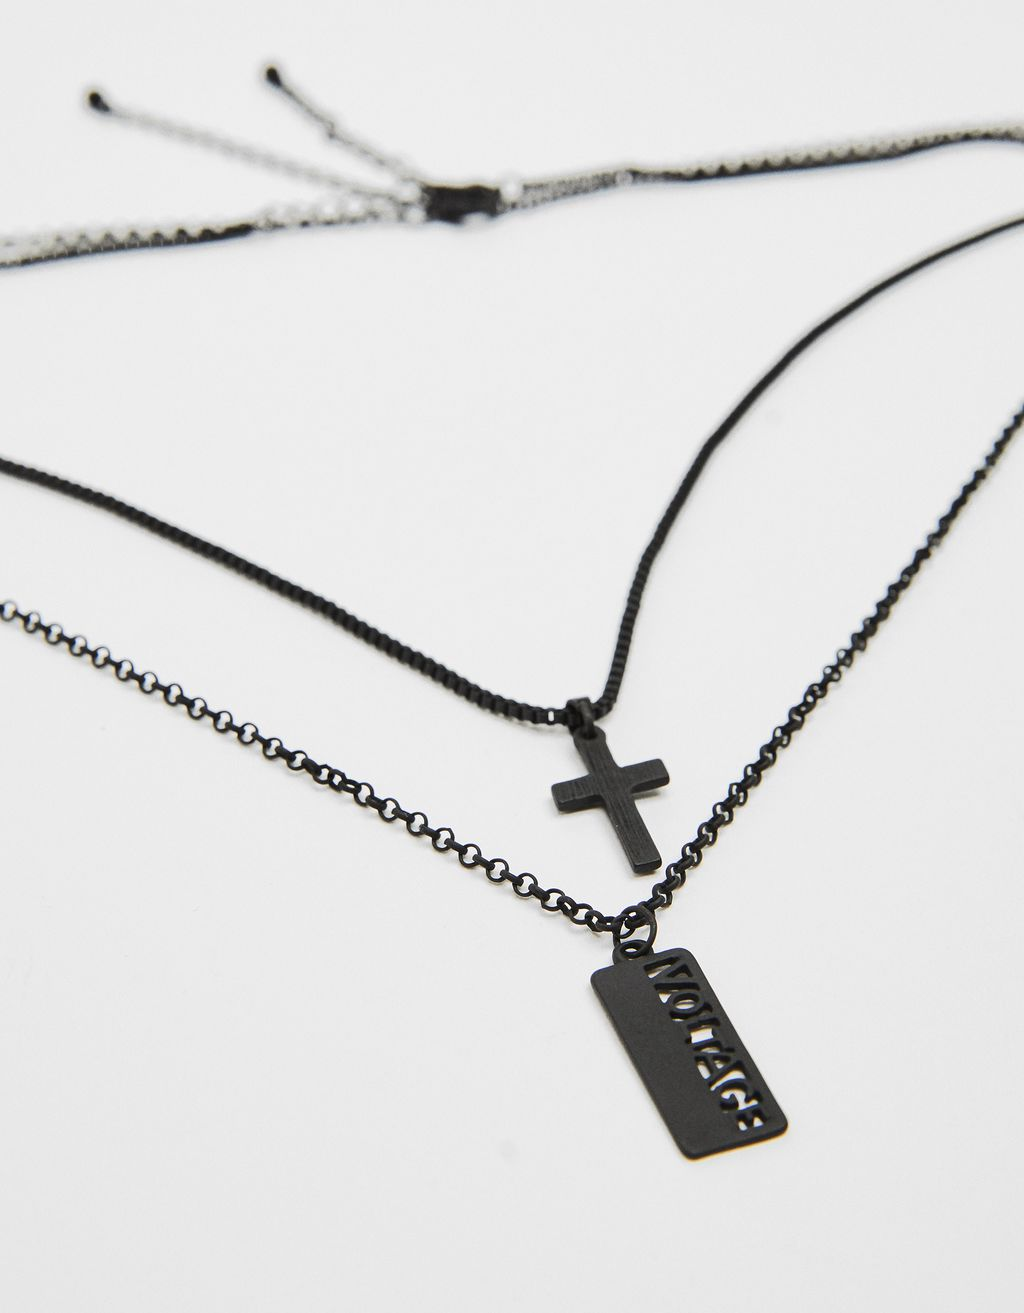 Multi-strand necklace with cross